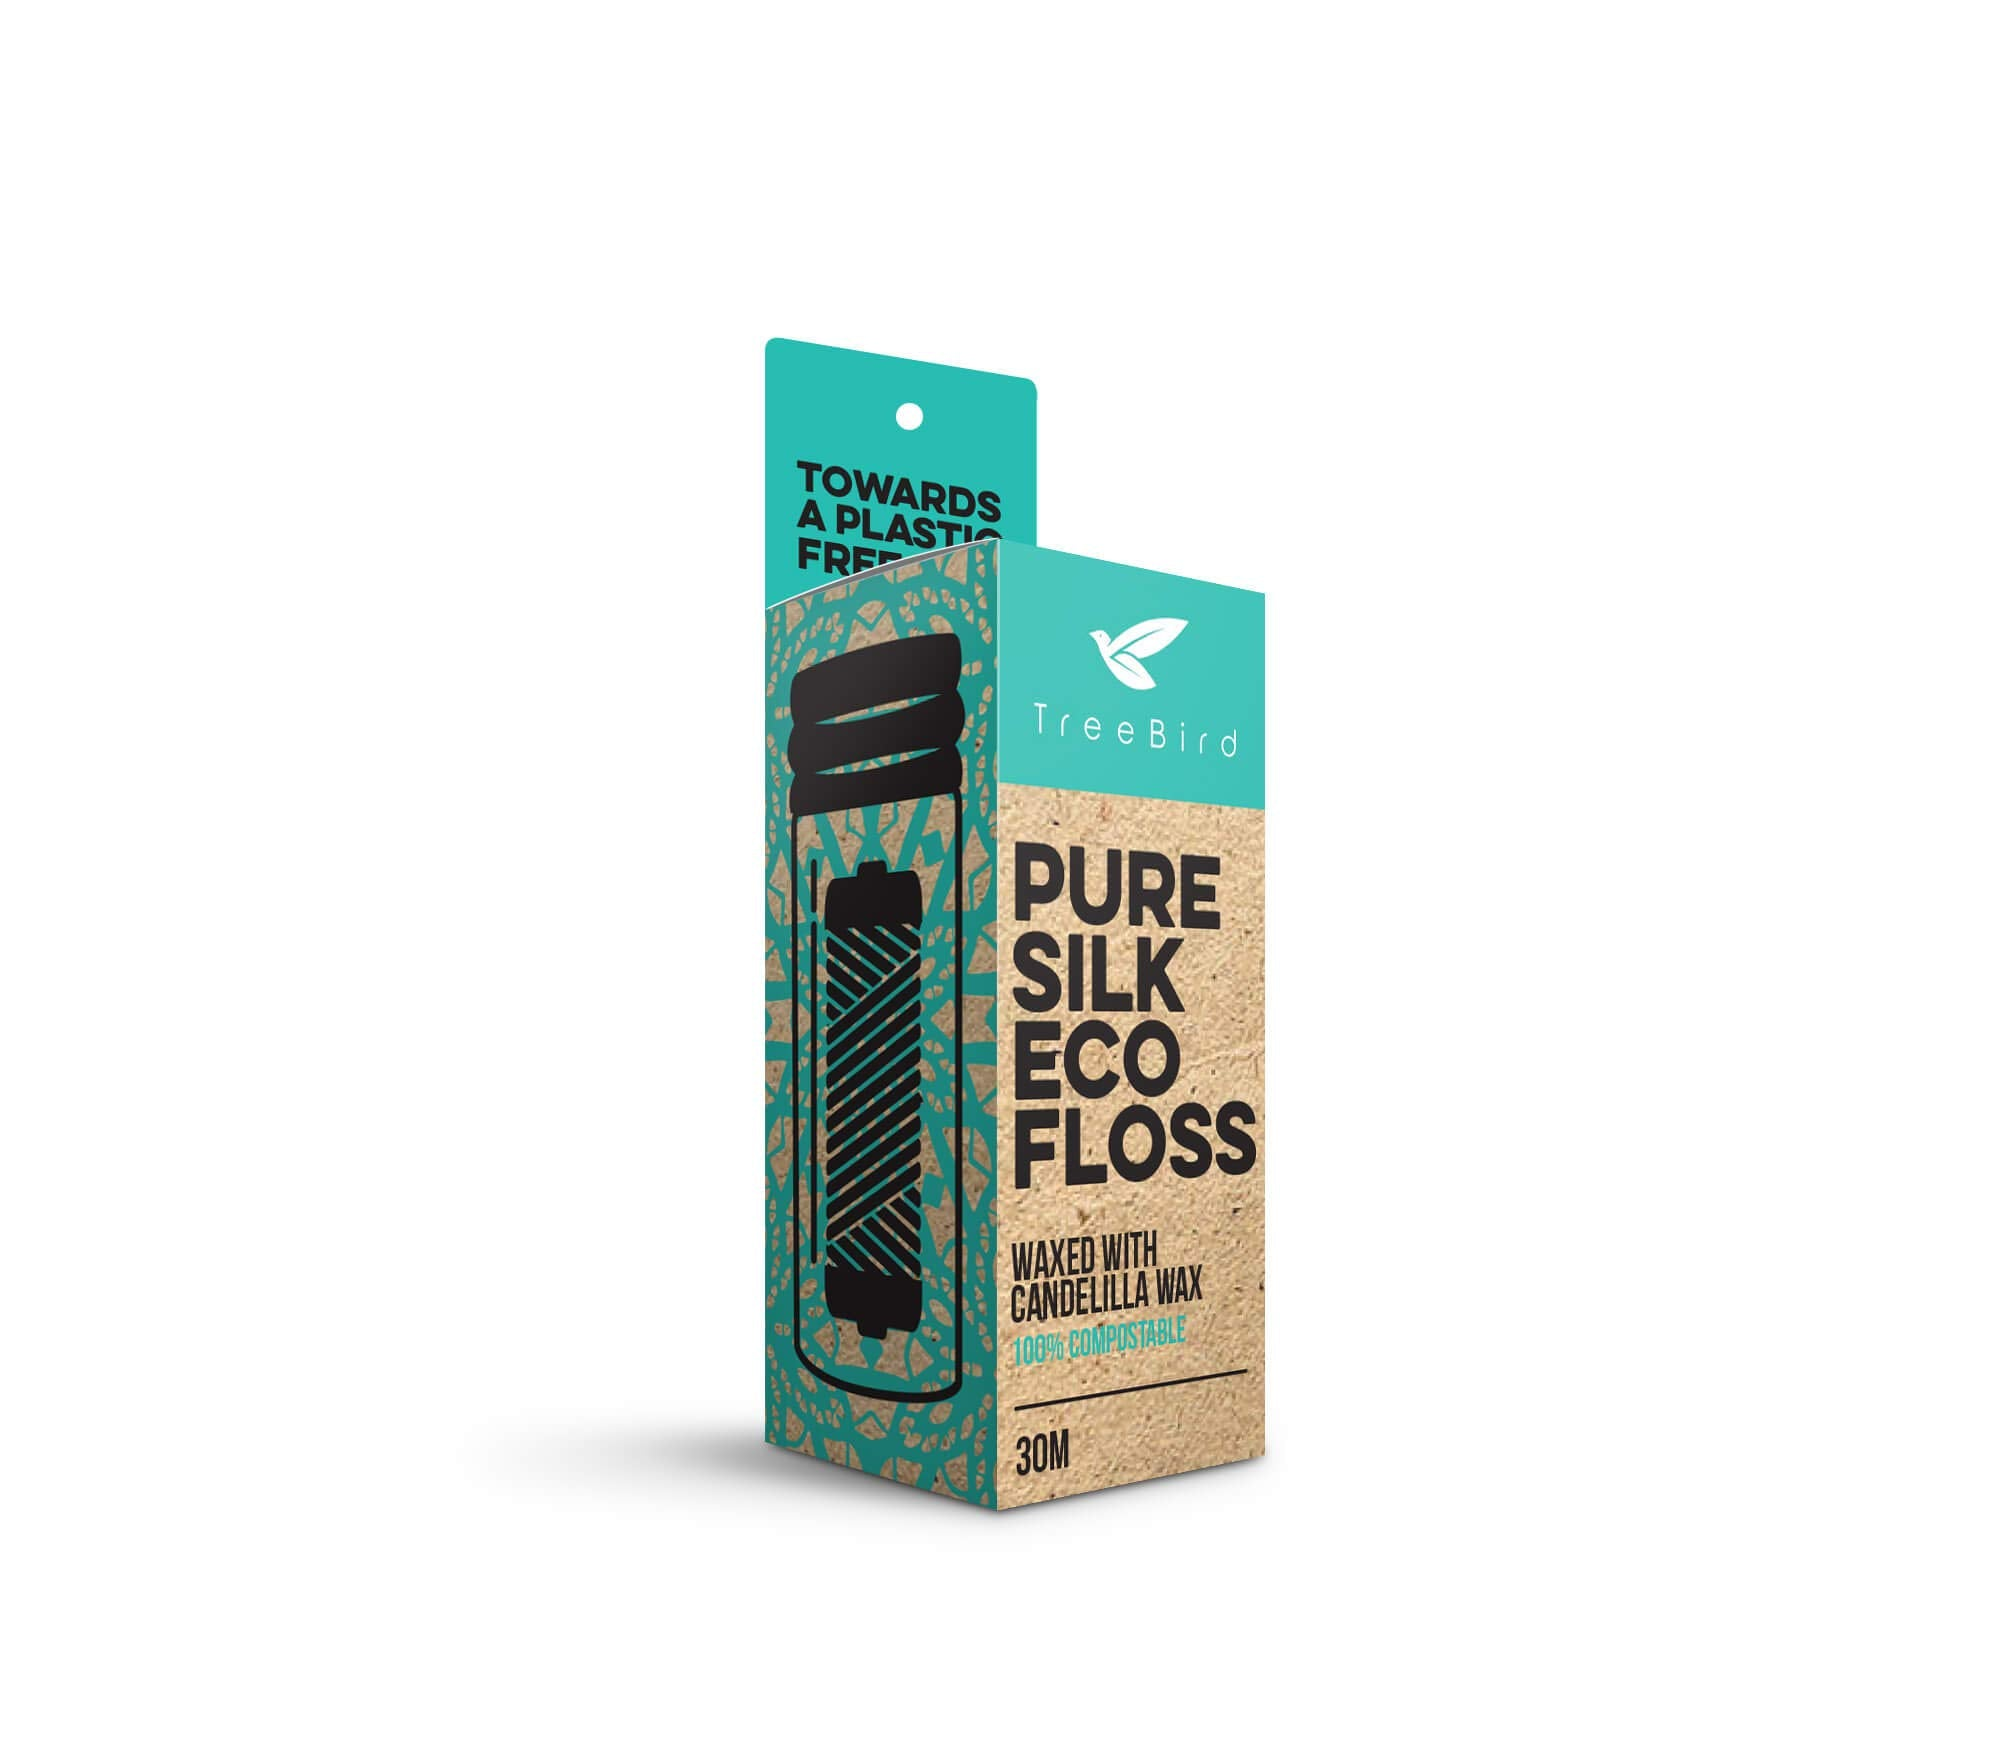 TreeBird Biodegradable Dental Floss With a Refillable Glass Holder